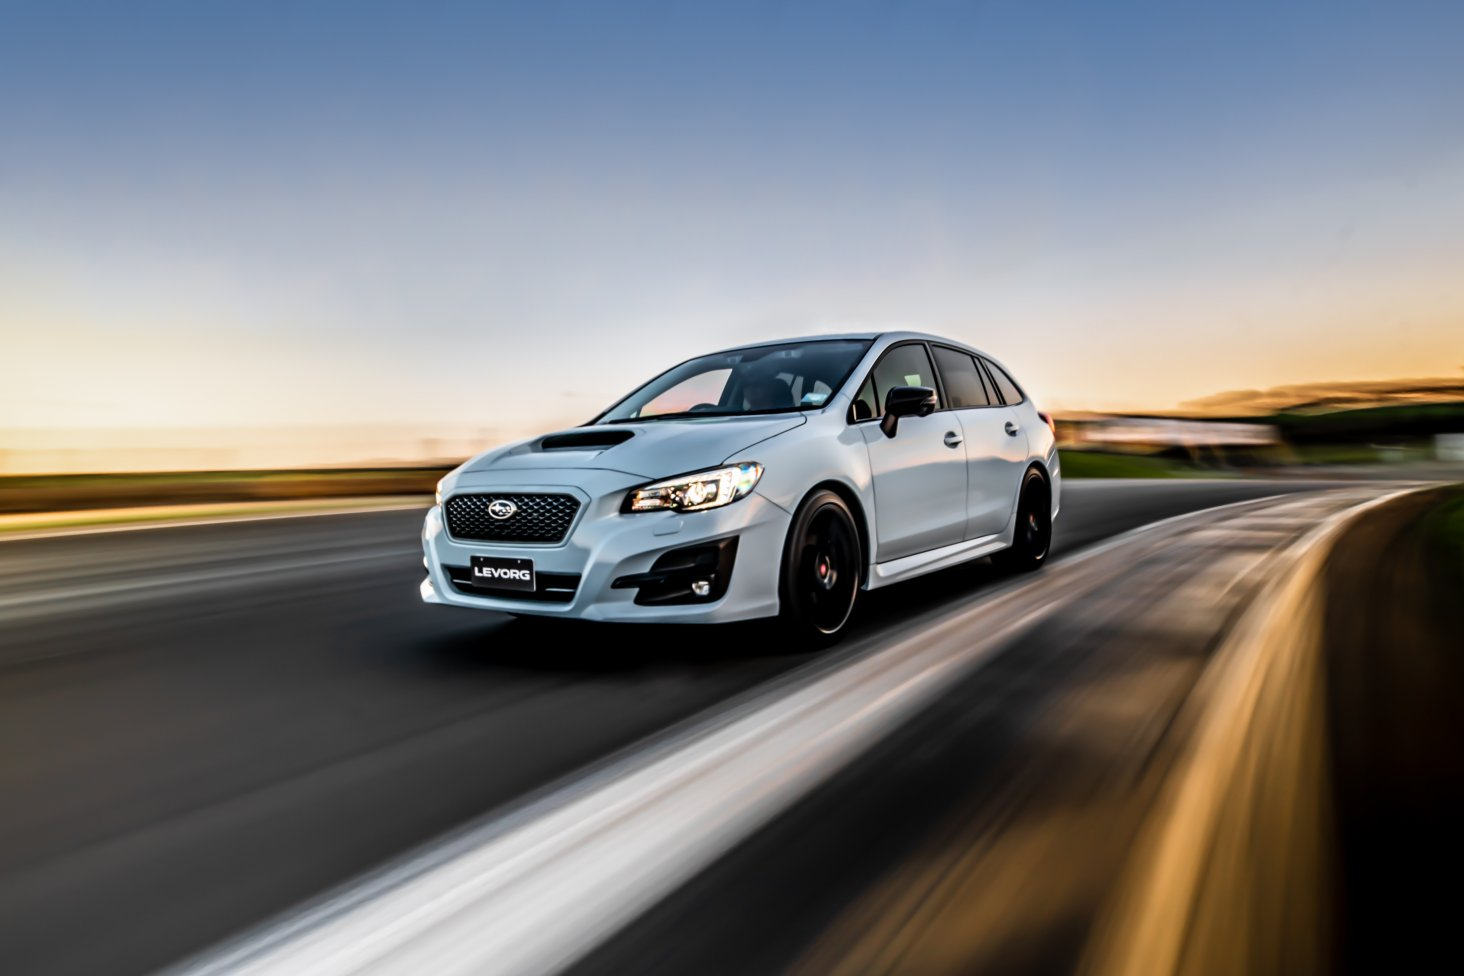 The Subaru Levorg is the highly spec'd performance wagon